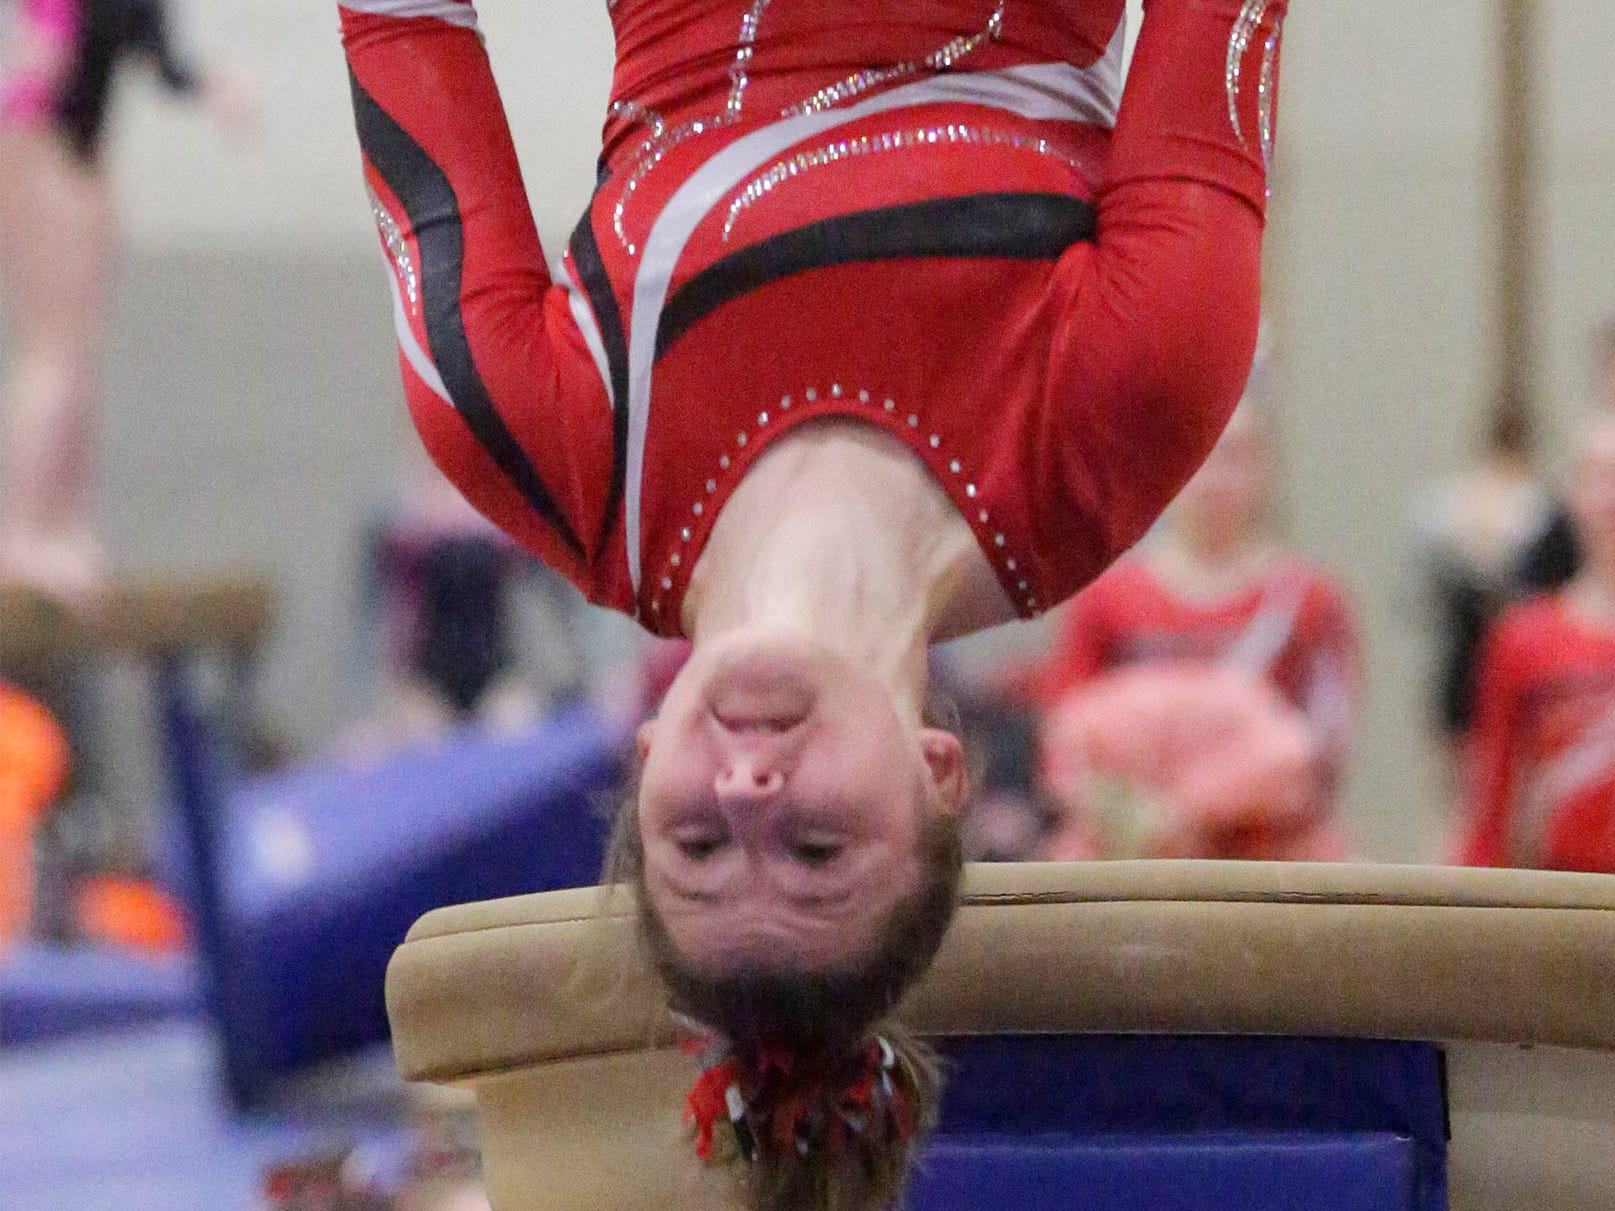 Manitowoc Lincoln's Brynn Tackett is upside down during her vault attempt at the WIAA Eastern Valley Conference Gymnastics Meet at Sheboygan South, Friday, February 15, 2019, in Sheboygan, Wis.